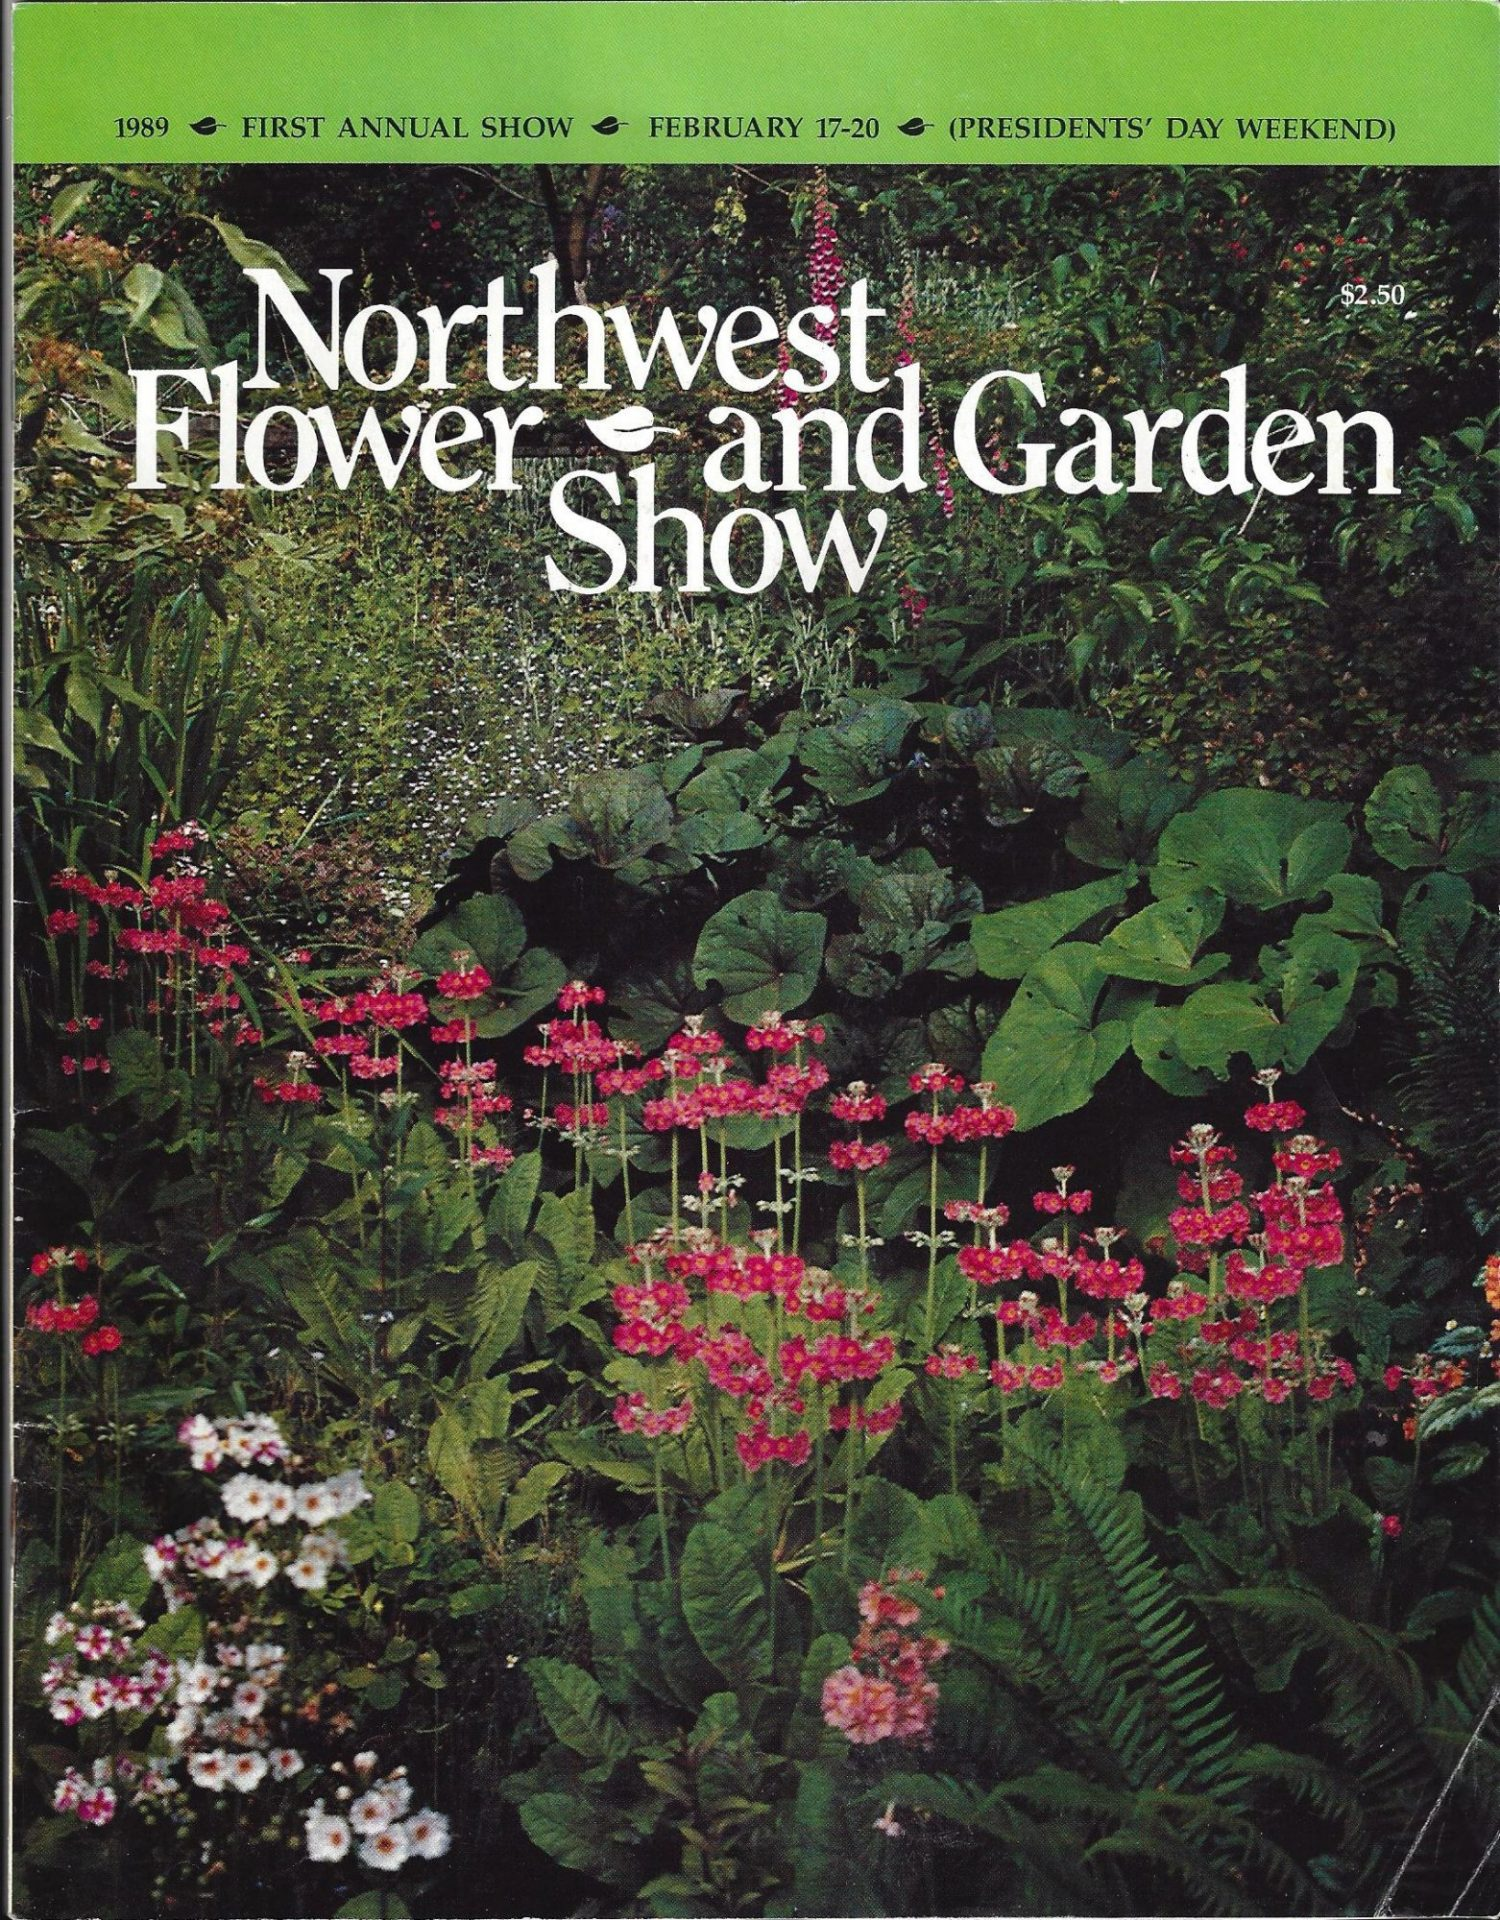 this indeed was an exciting event showcasing such a sizable indoor garden display never before seen here a dream come true of the founder and owner - Northwest Flower And Garden Show